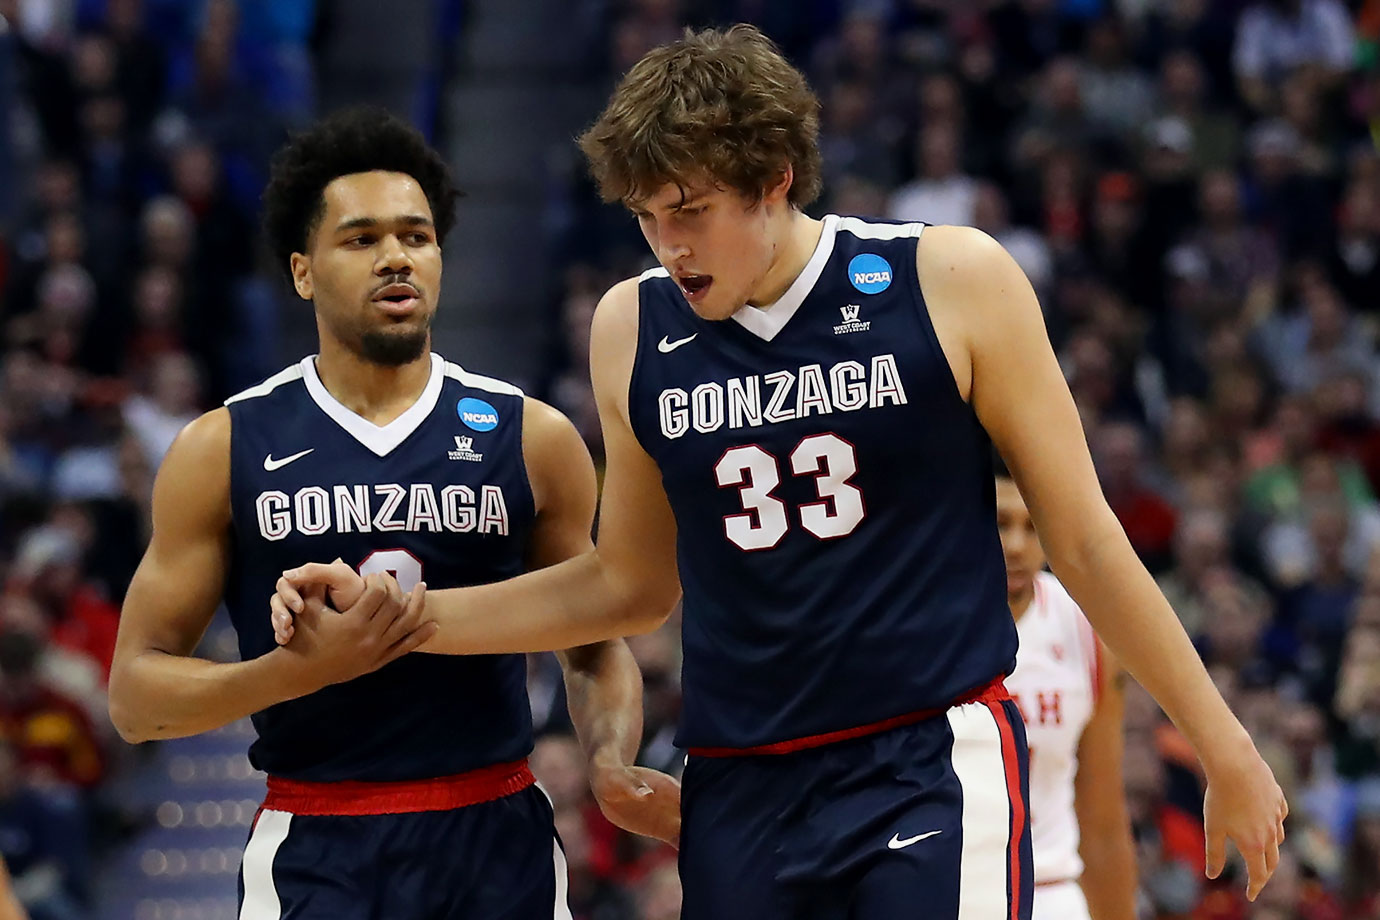 The Bulldogs have been one of the most impressive teams of the tournament, cruising to wins over Seton Hall and Utah by a combined 39 points. They may get past Syracuse, but would then be looking at consecutive games against Virginia, North Carolina and Kansas to win the title. In other words, Gonzaga will have to settle for the third Elite Eight in program history.